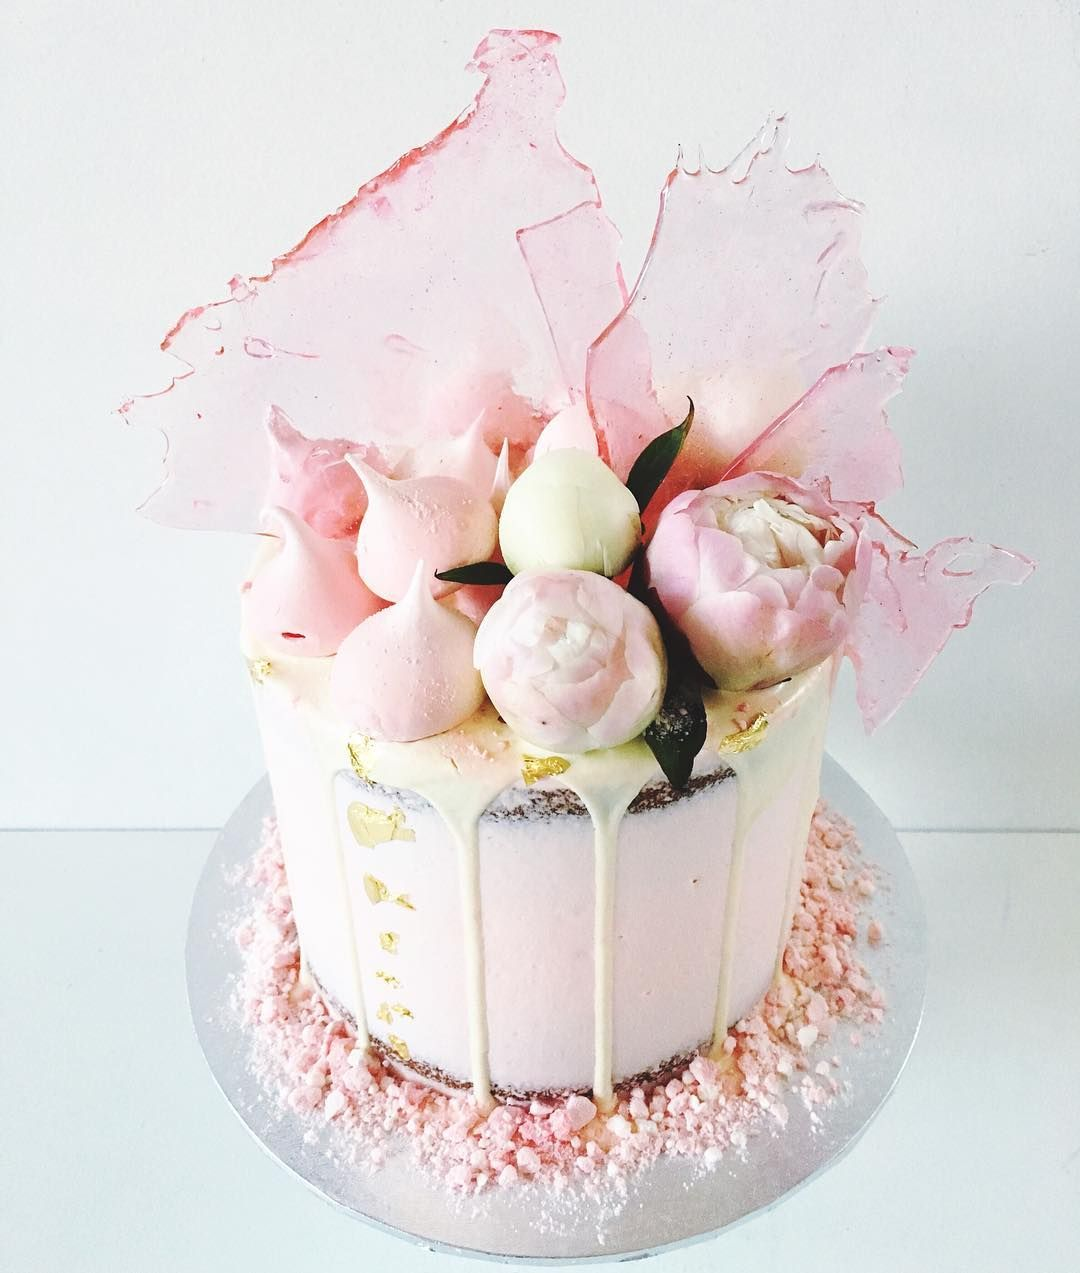 Pastel Pink Cake With Sugar Shards By Perth Baker Marguerite Cakes